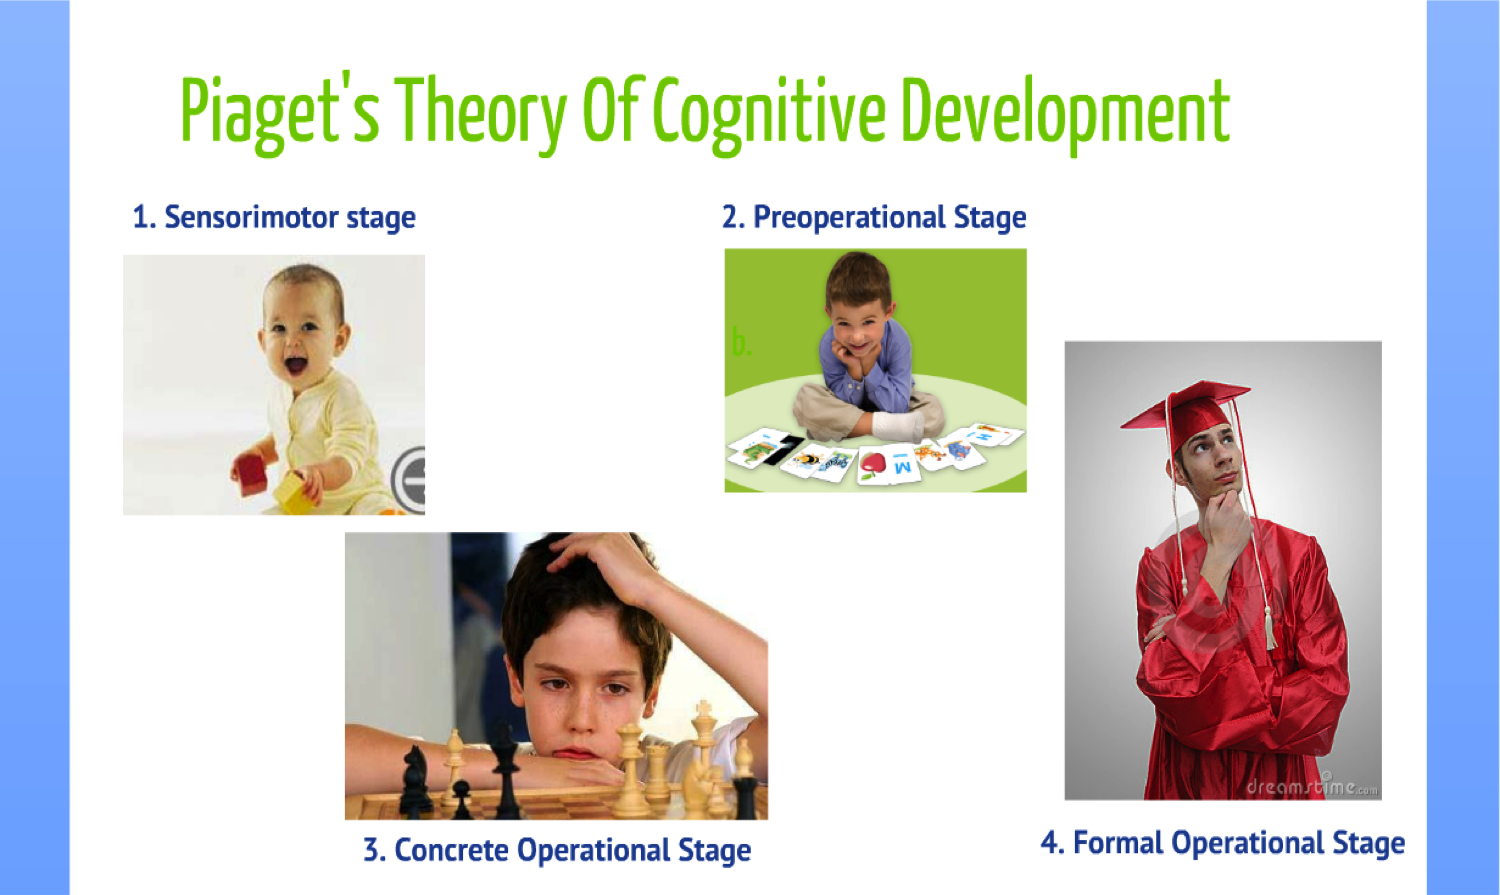 An implementation of piagets stage theory of cognitive development on the pre operational children